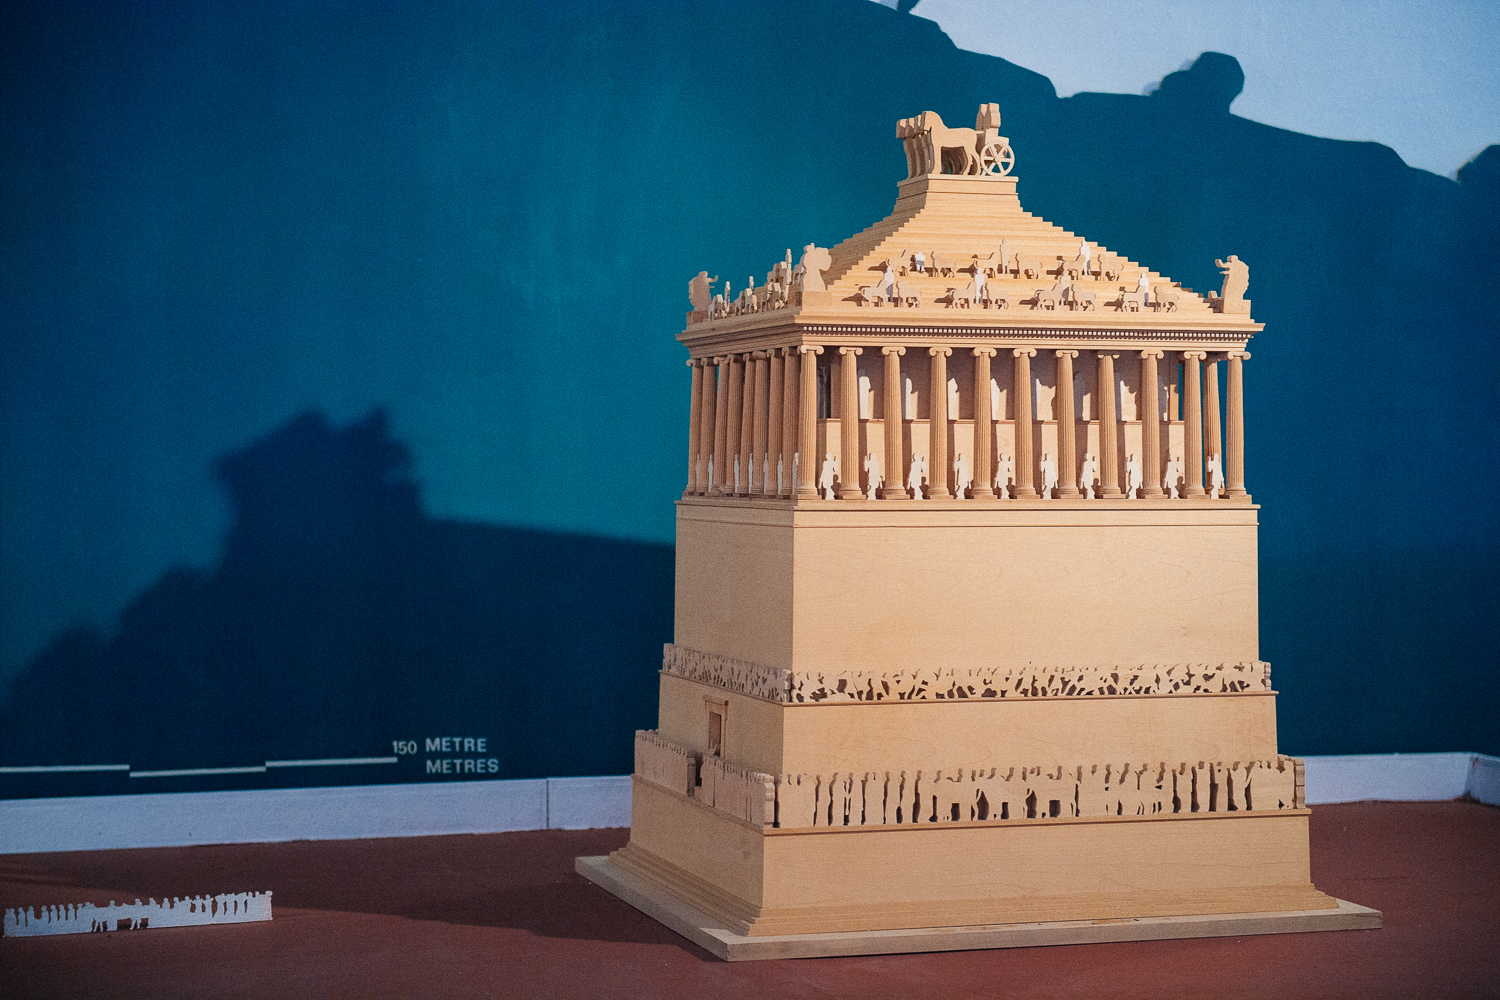 A replica in the museum shows how the Mausoleum was before it was destroyed by earthquakes in 1404. The top had 36 columns and larger than life statues of lions and a carriage with four horses carrying the images of, supposedly, Maussollus and his wife.